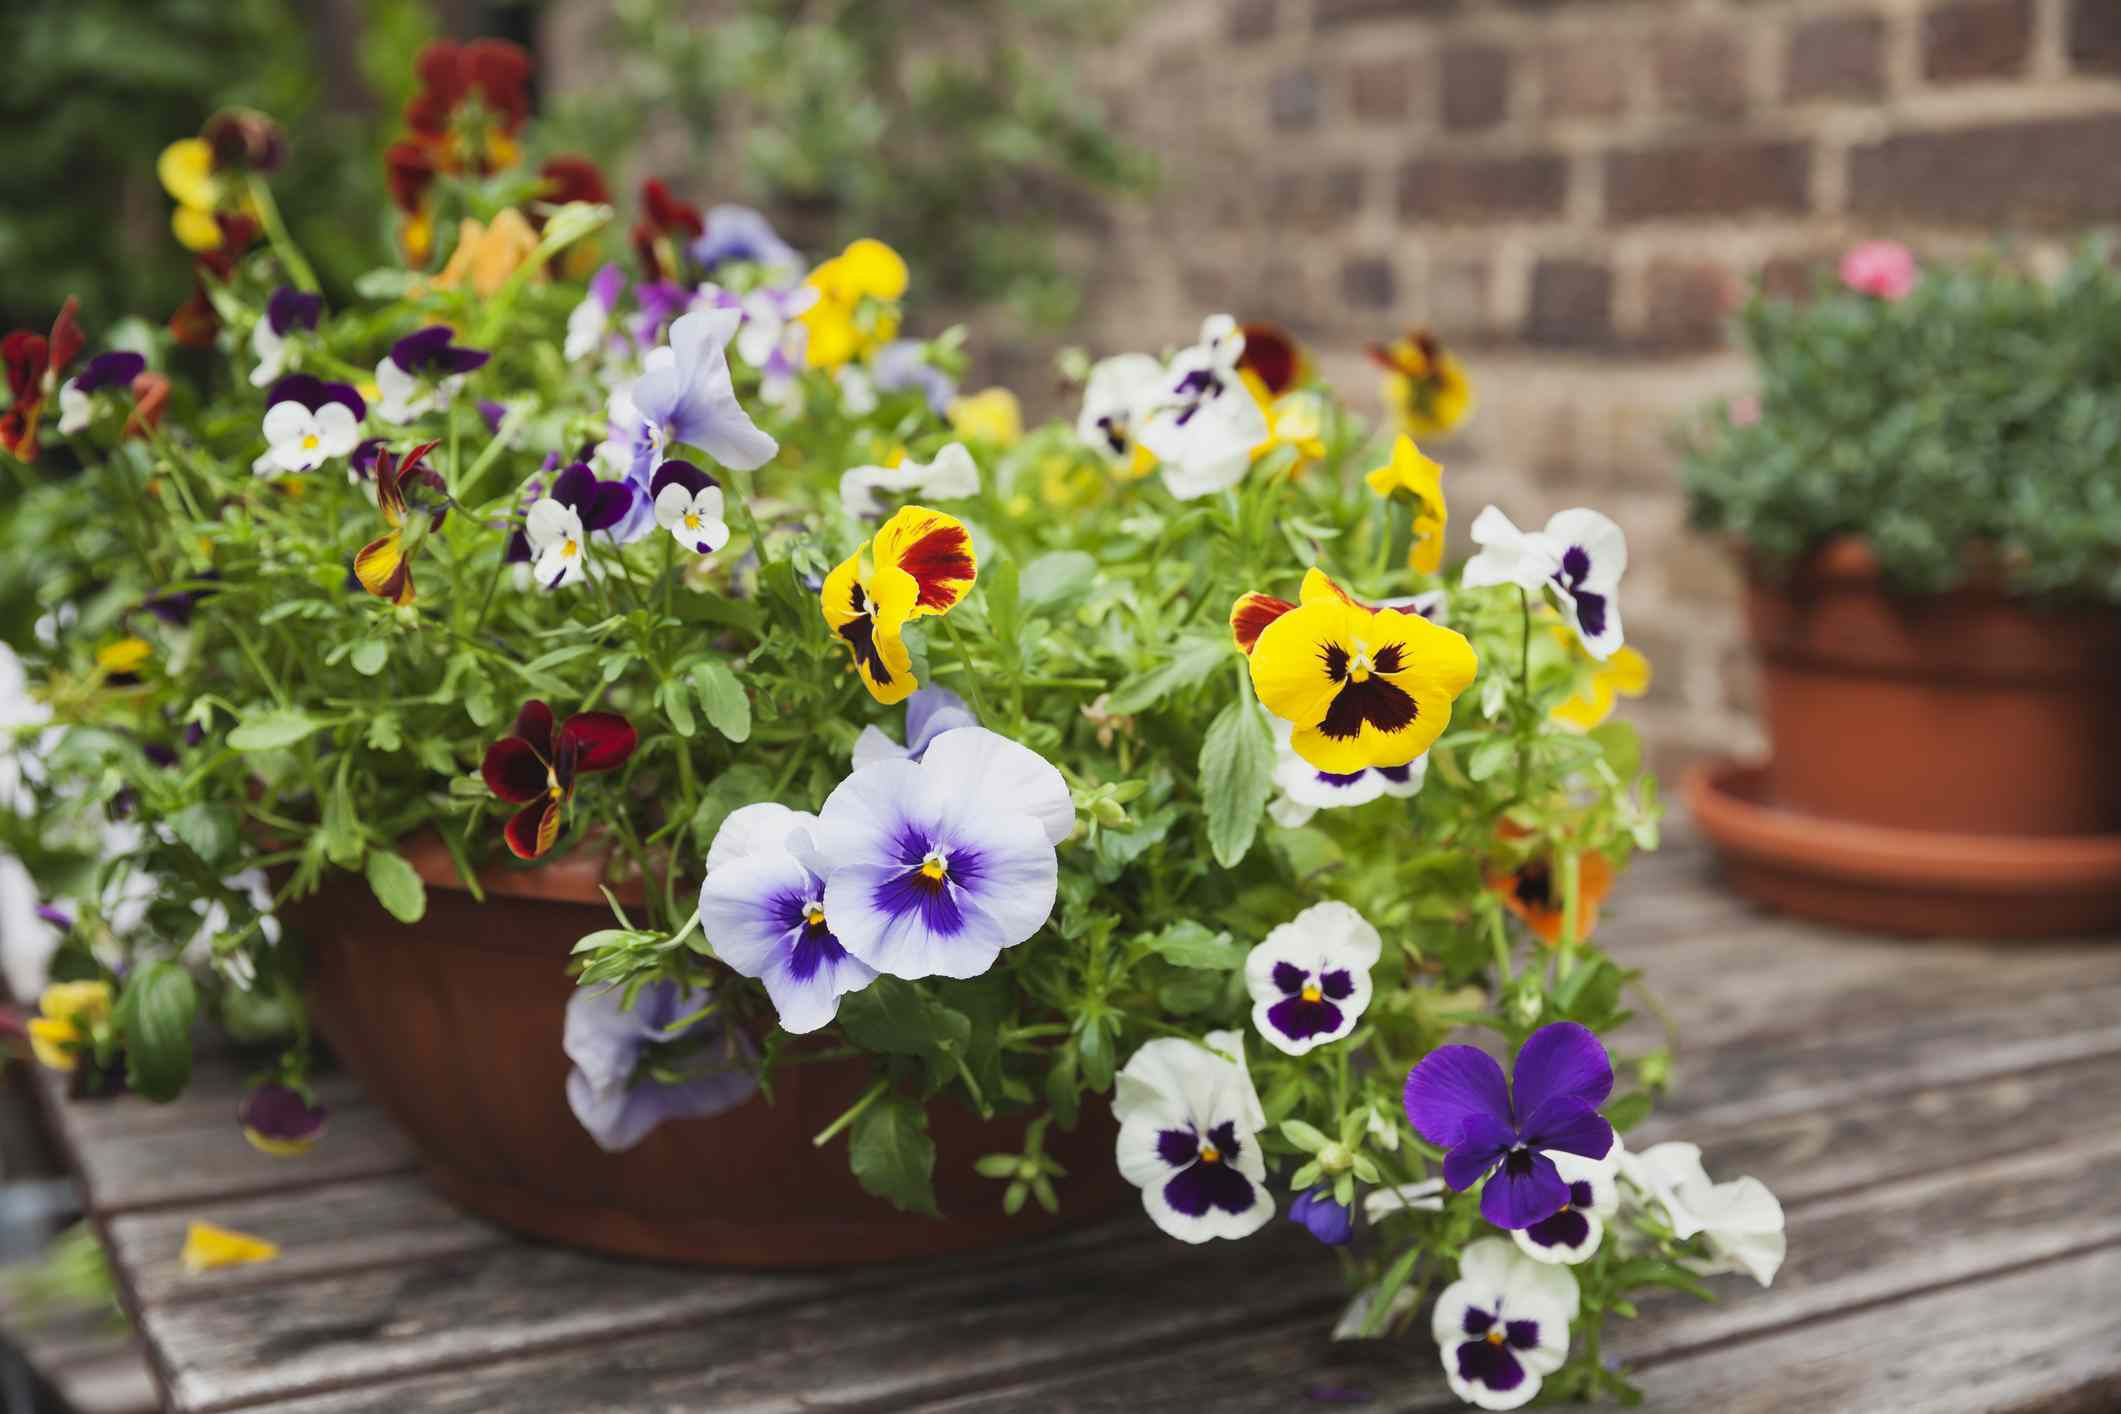 viola flowers in white, blue, purple, red, yellow, and brown growing in pot on wooden deck